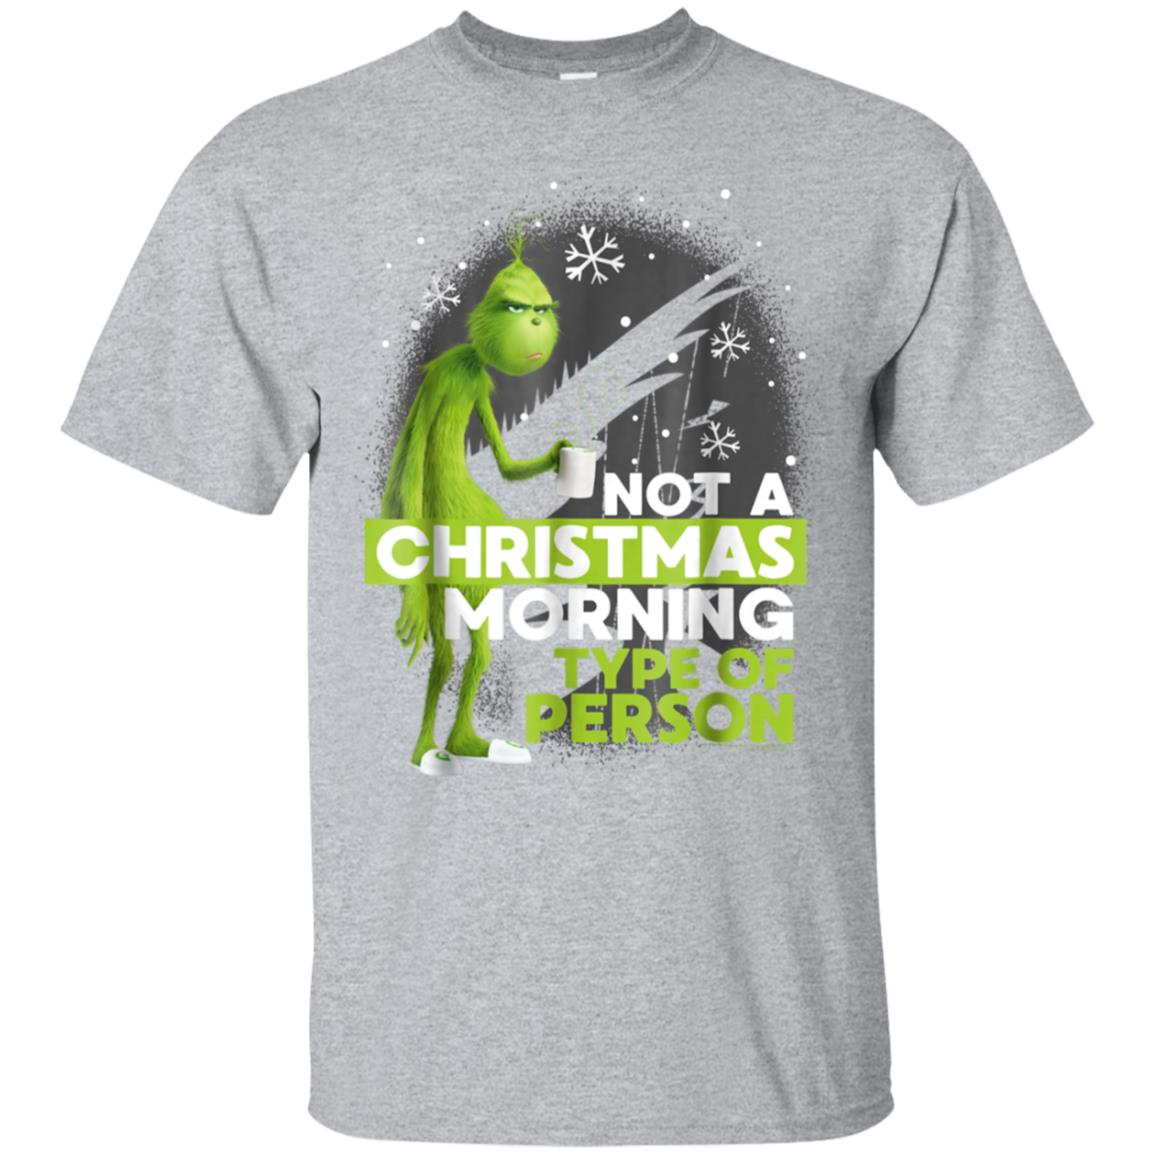 Dr. Seuss The Grinch Go Away T-shirt 99promocode